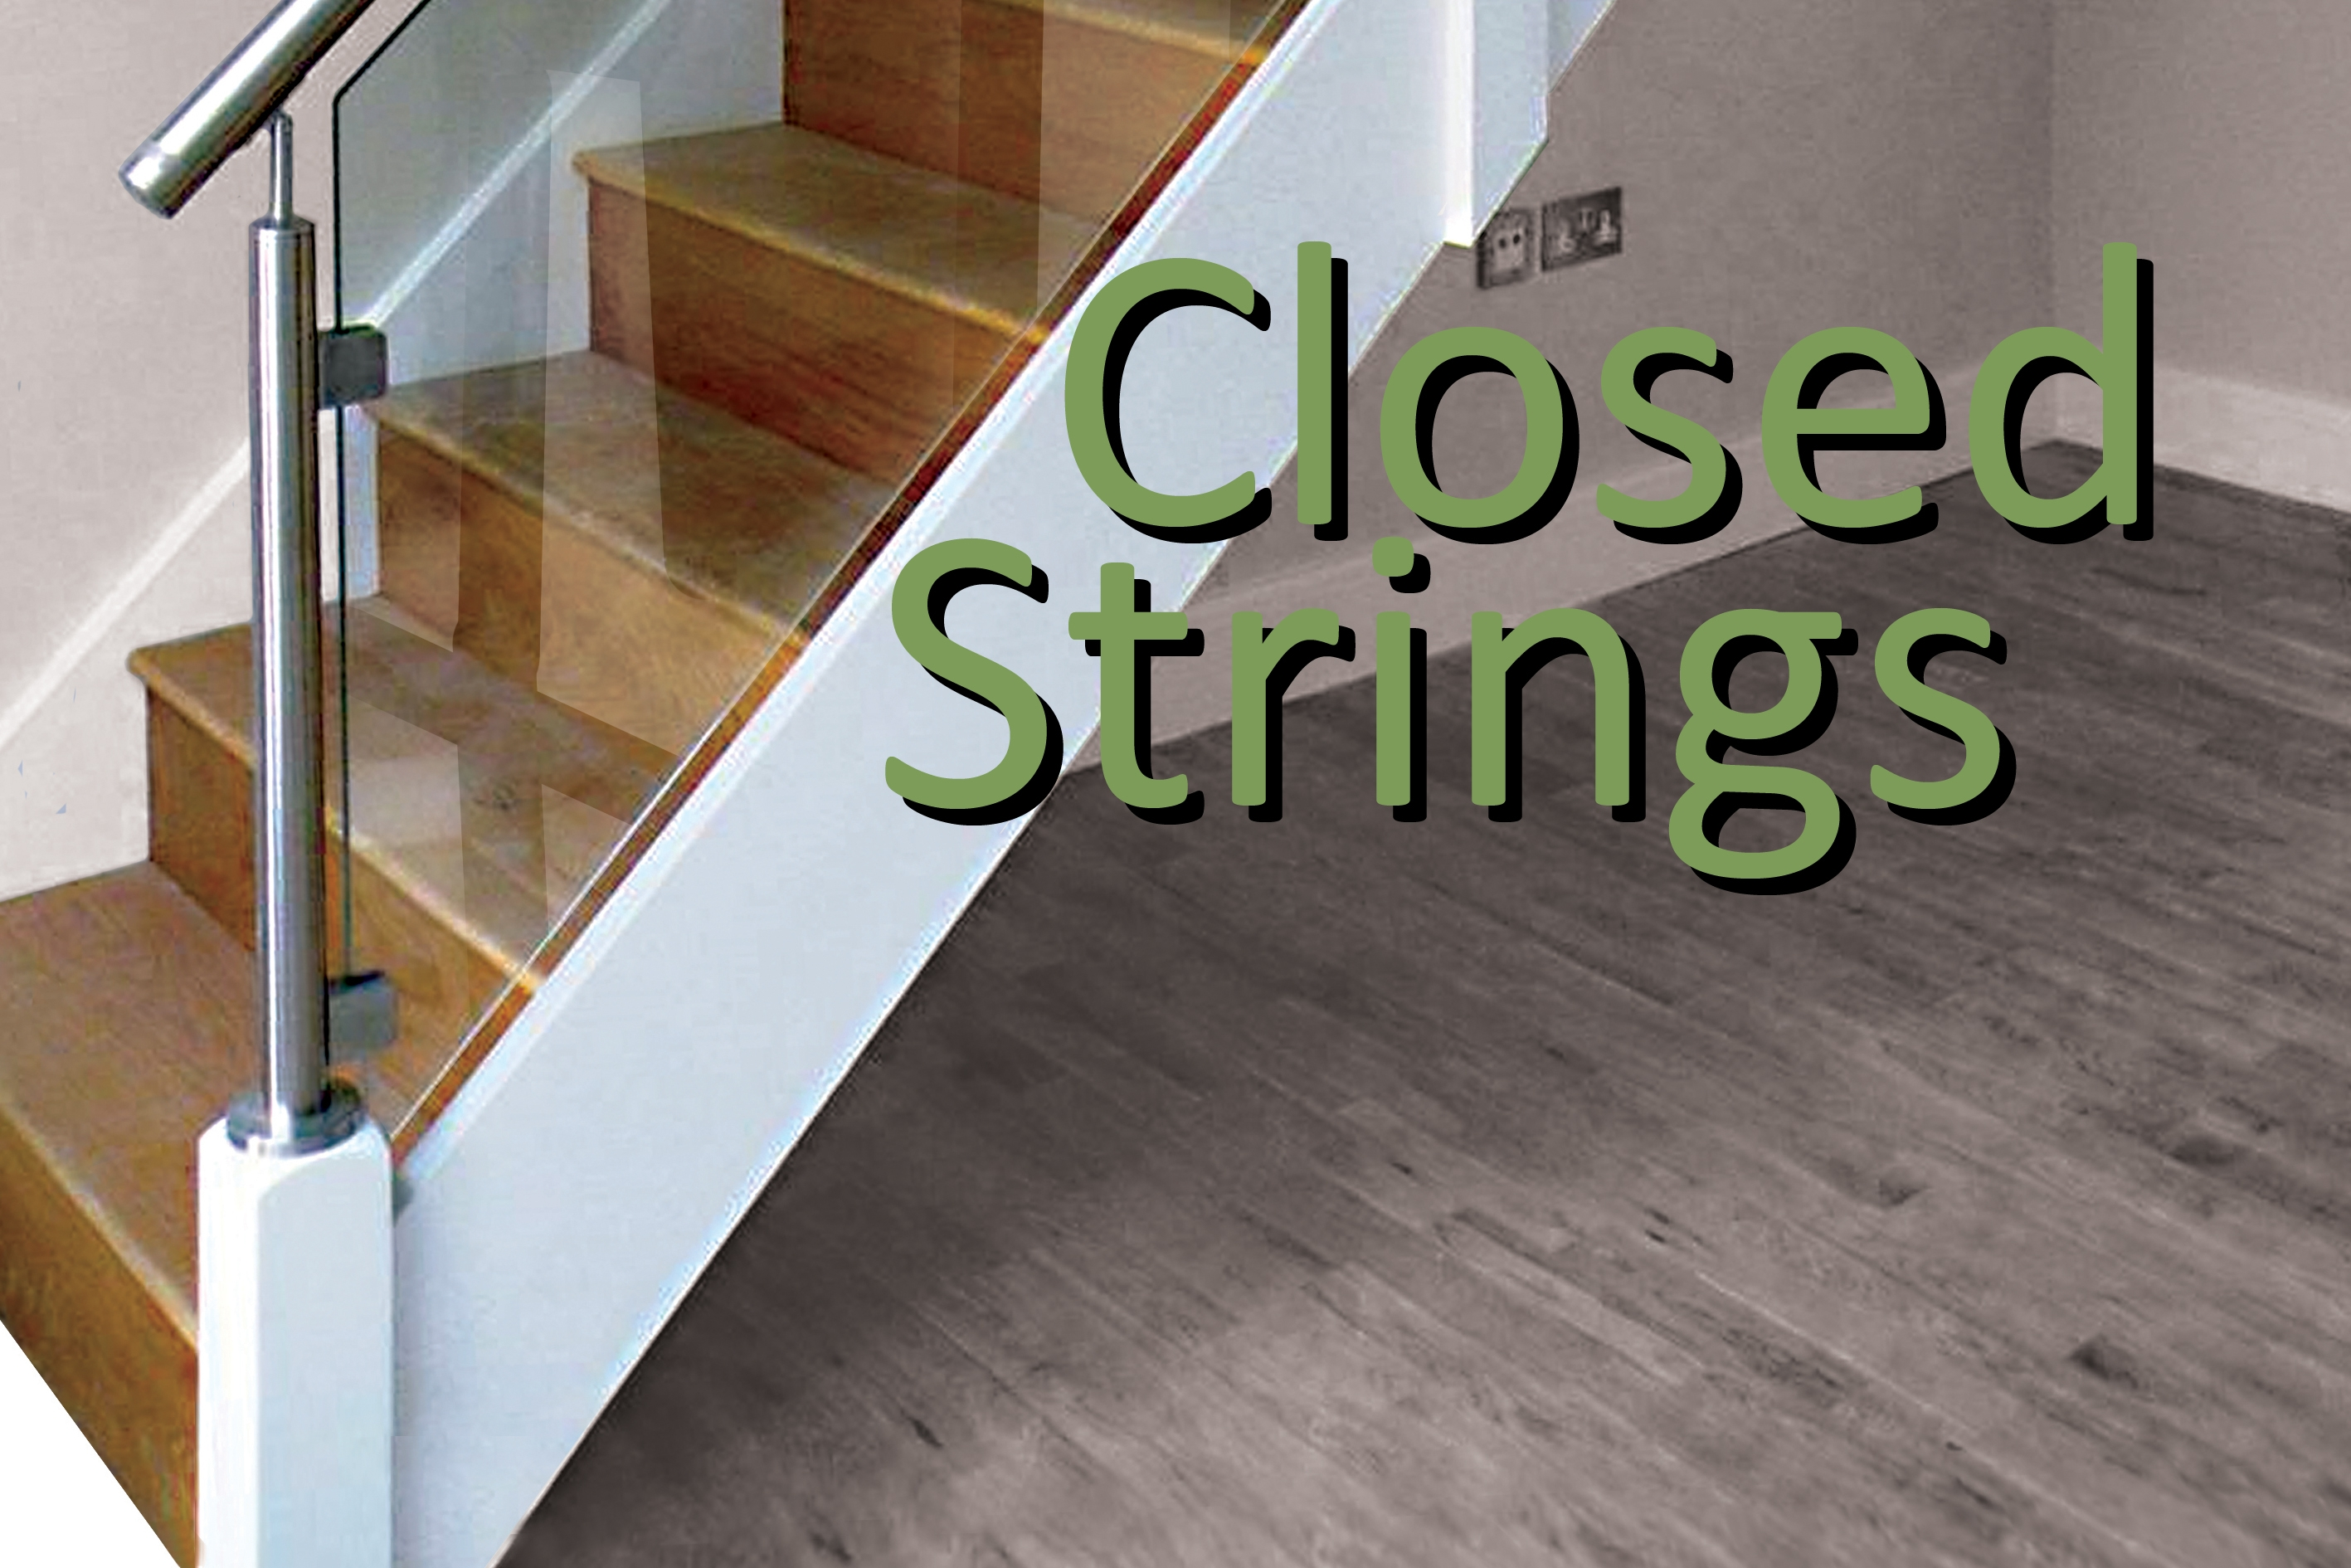 Closed string